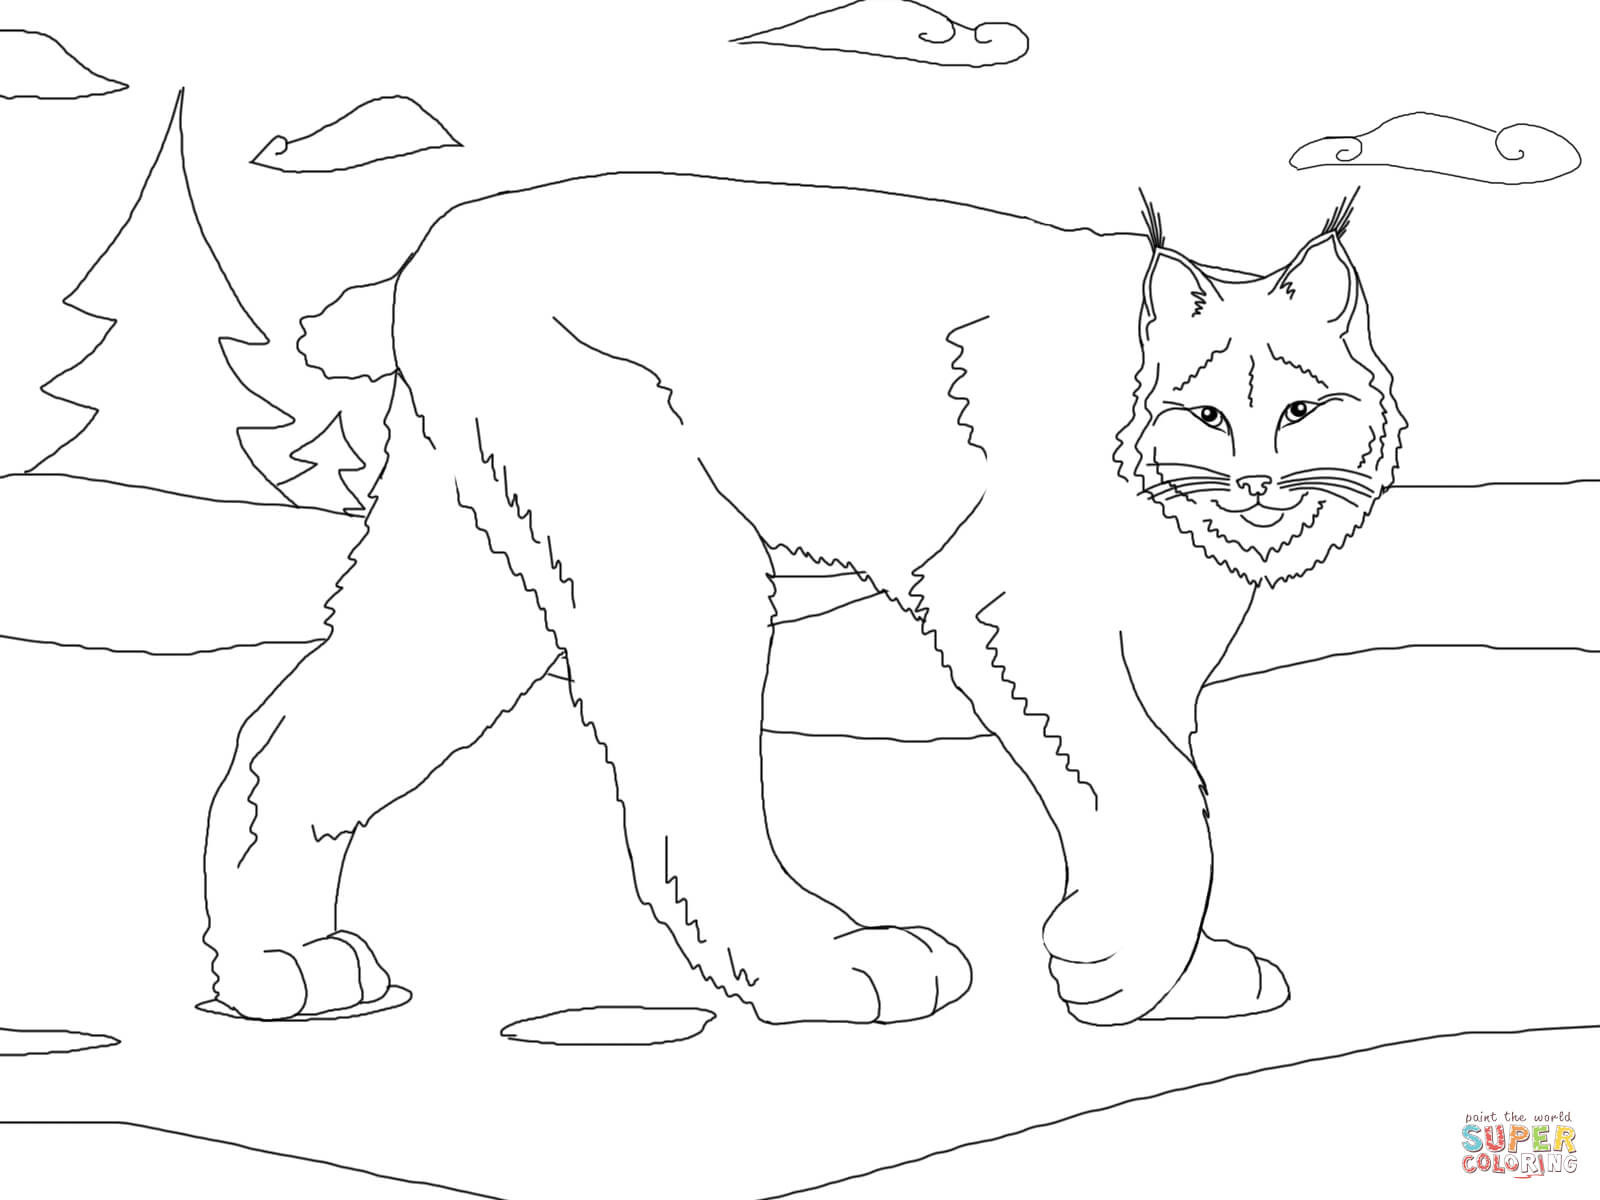 Best ideas about Lynx Coloring Sheets For Girls . Save or Pin Lynx Free Colouring Pages Now.